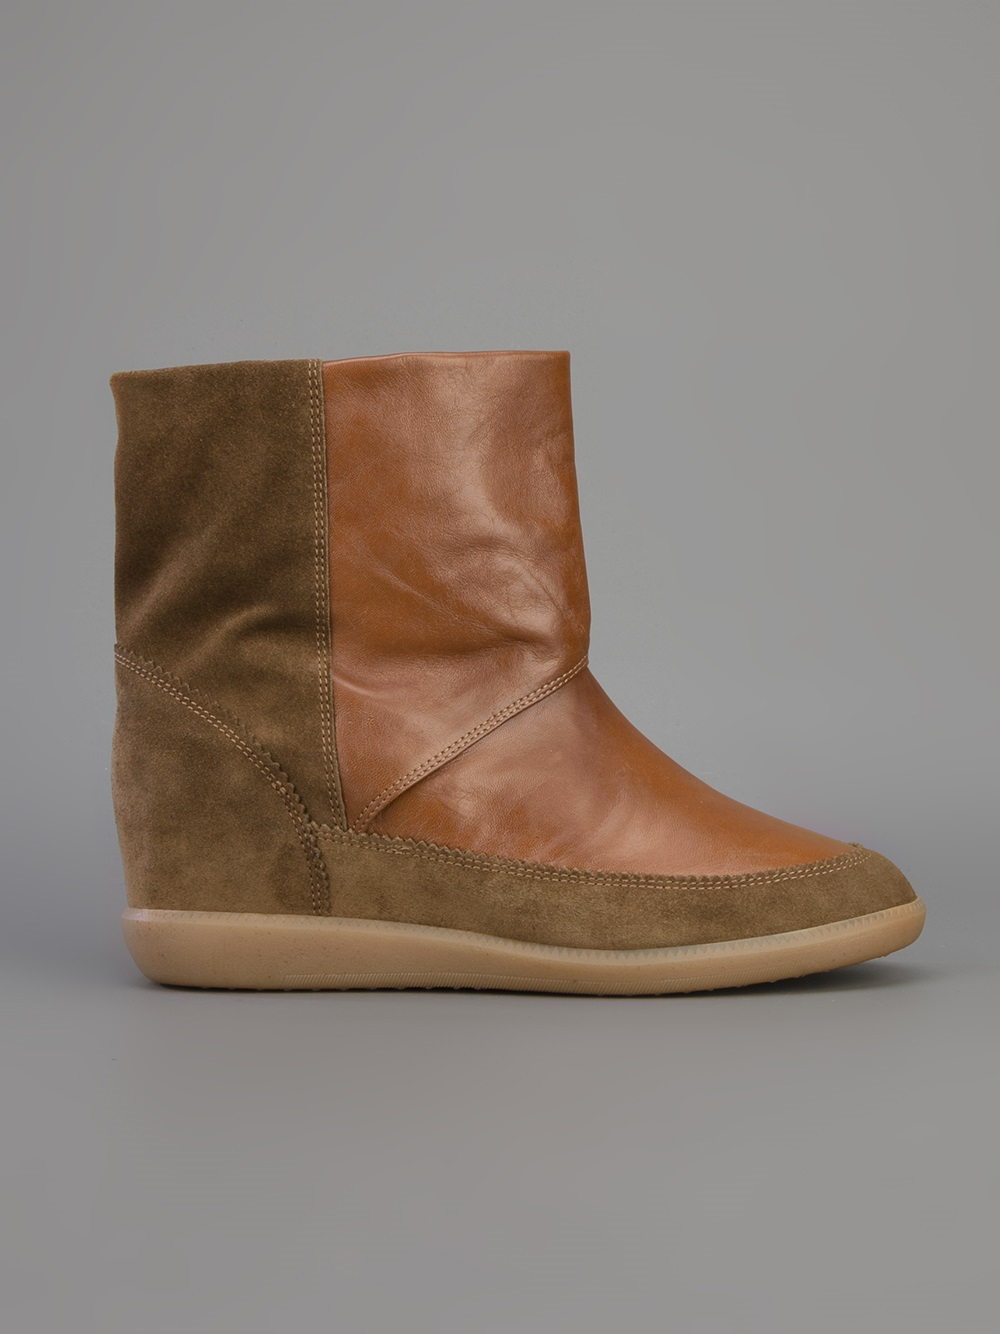 Étoile Isabel Marant Nuty Boots in Brown